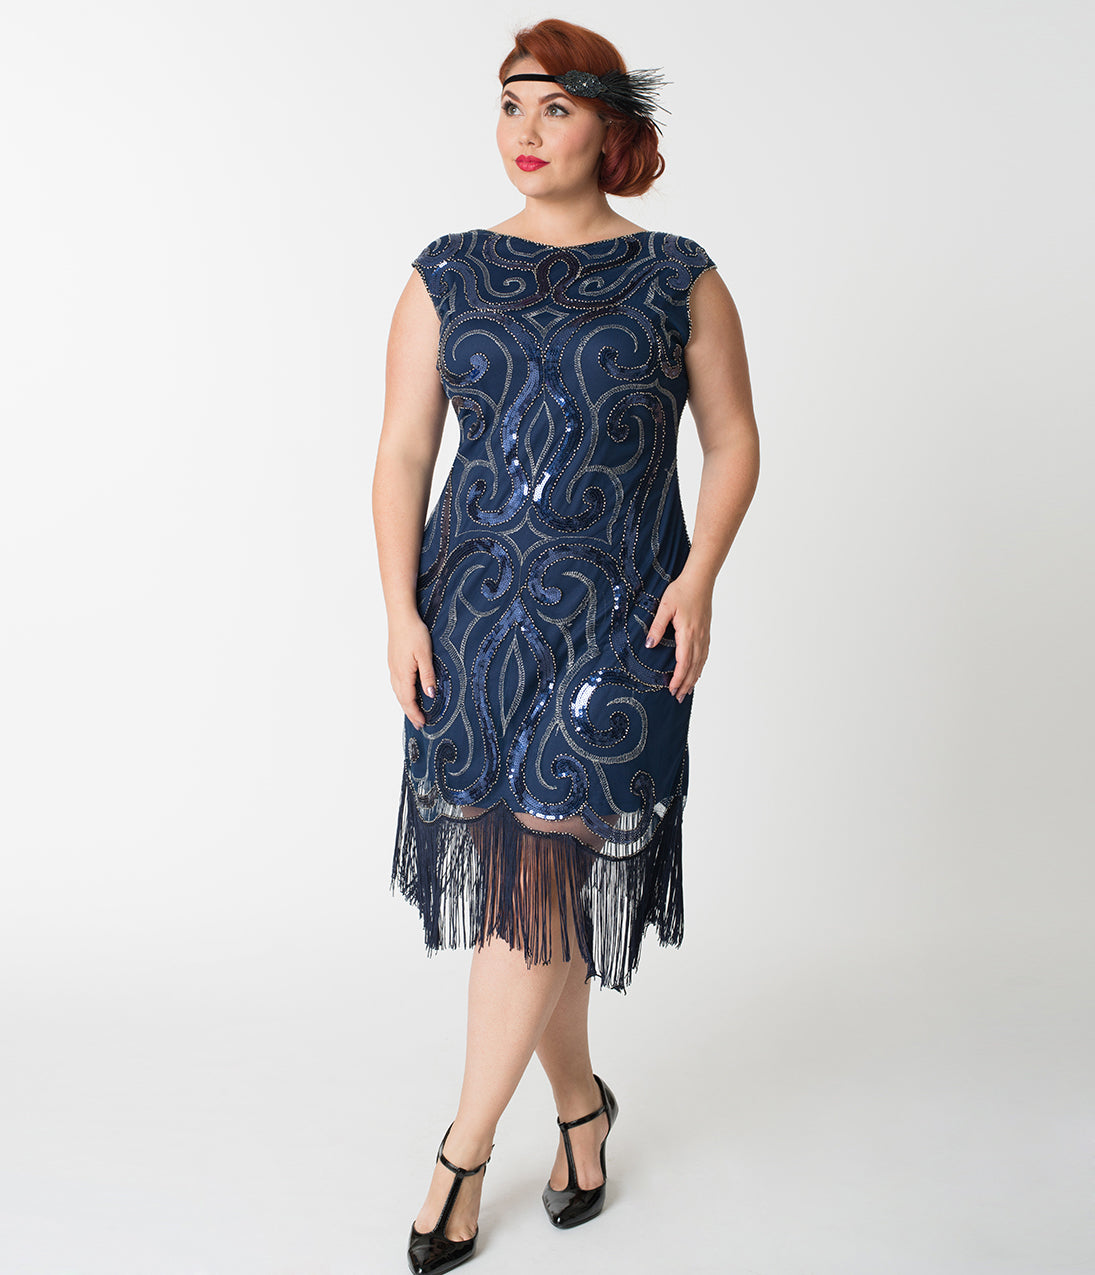 Roaring 20s Costumes- Flapper Costumes, Gangster Costumes Navy Blue  Silver Swirl Iris Fringe Flapper Dress $74.00 AT vintagedancer.com